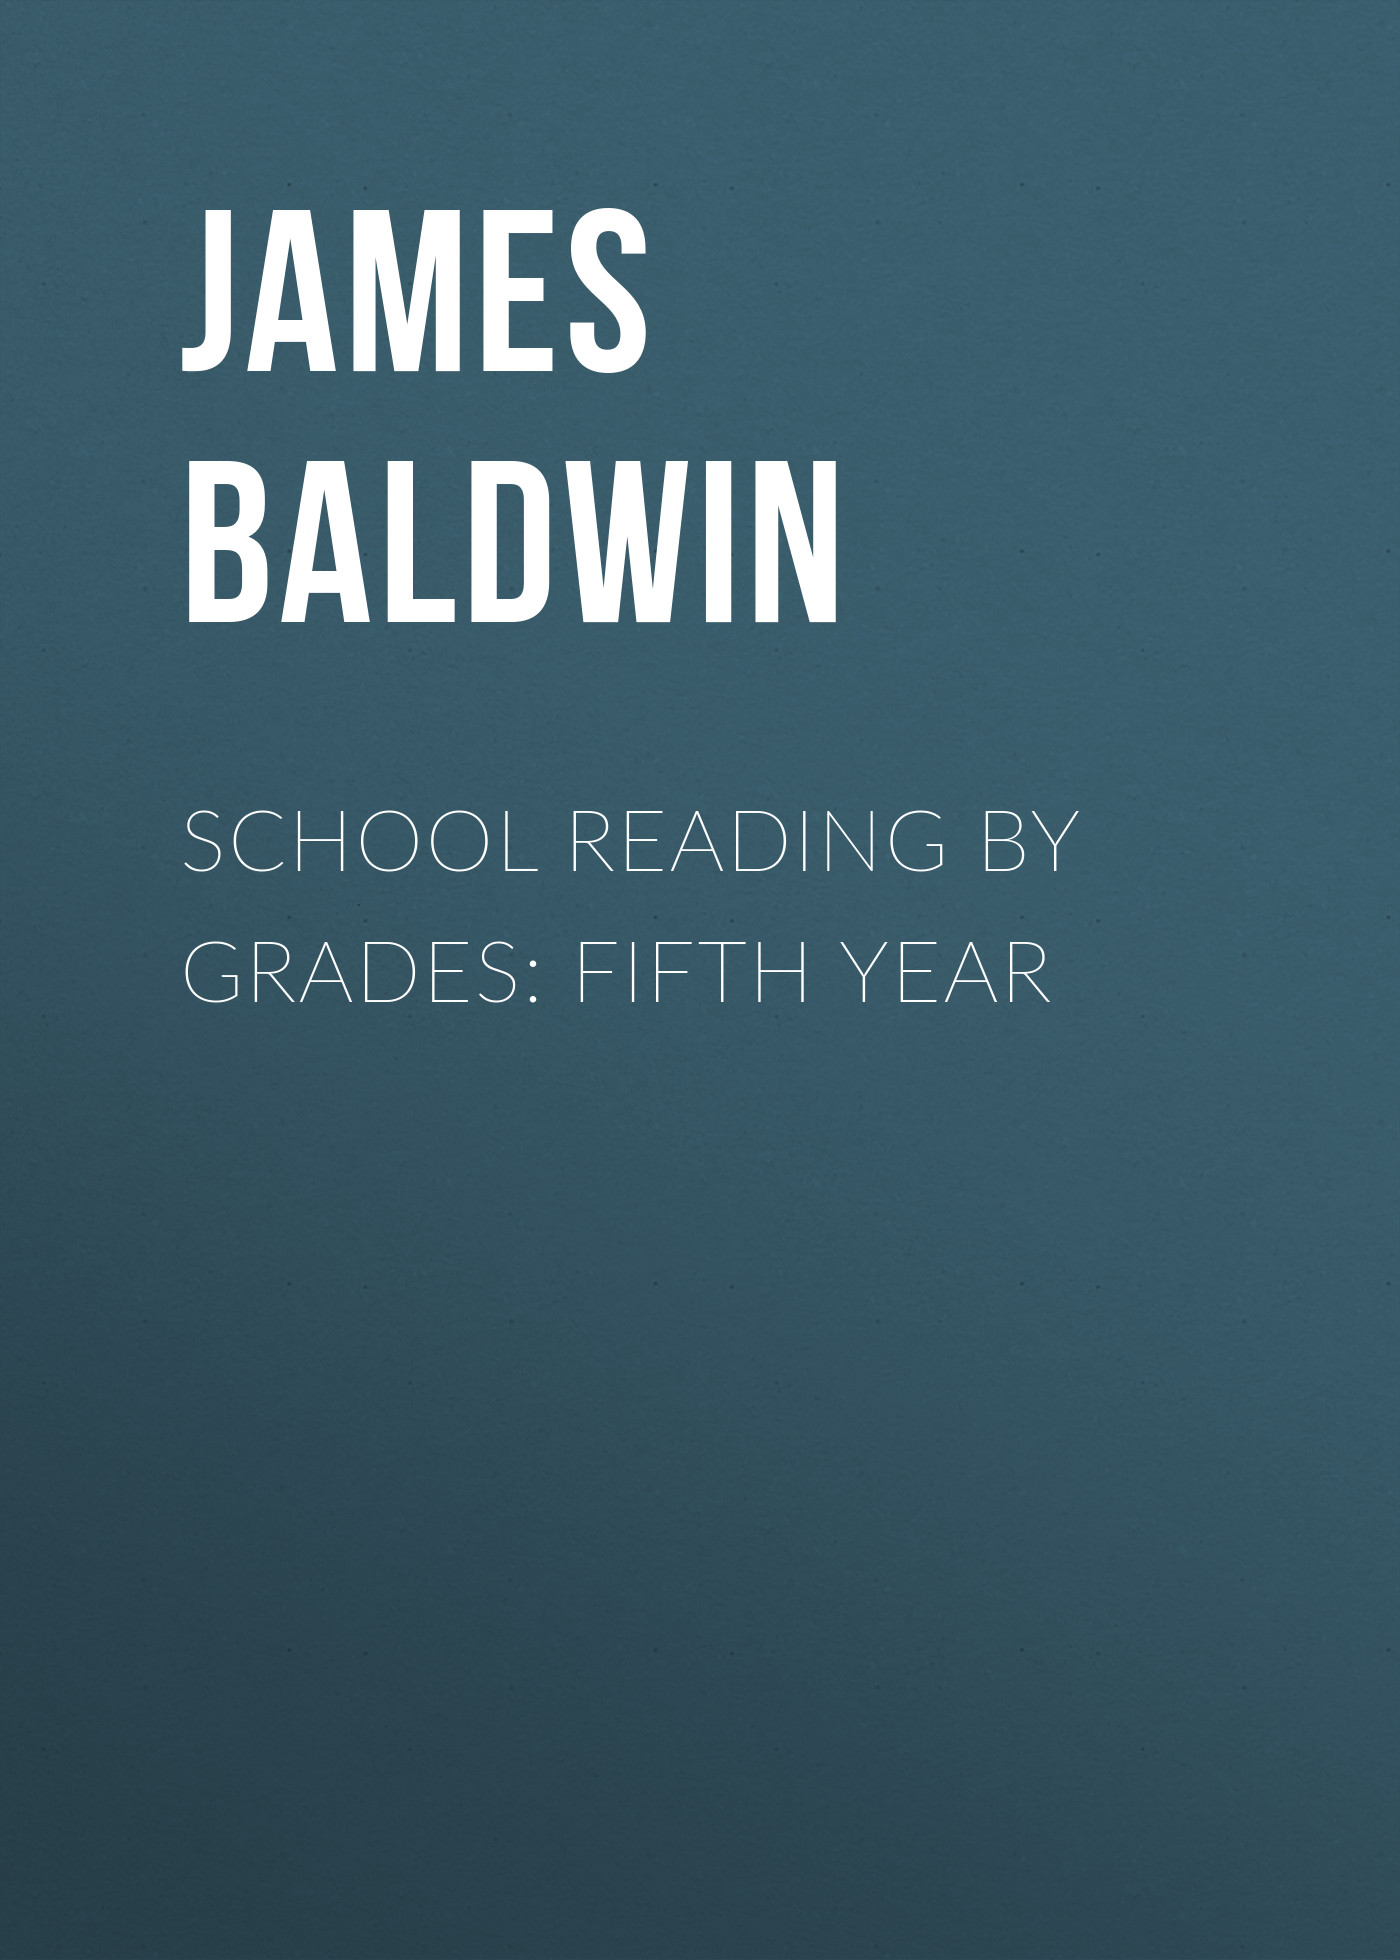 Baldwin James School Reading By Grades: Fifth Year bbb bhe 05